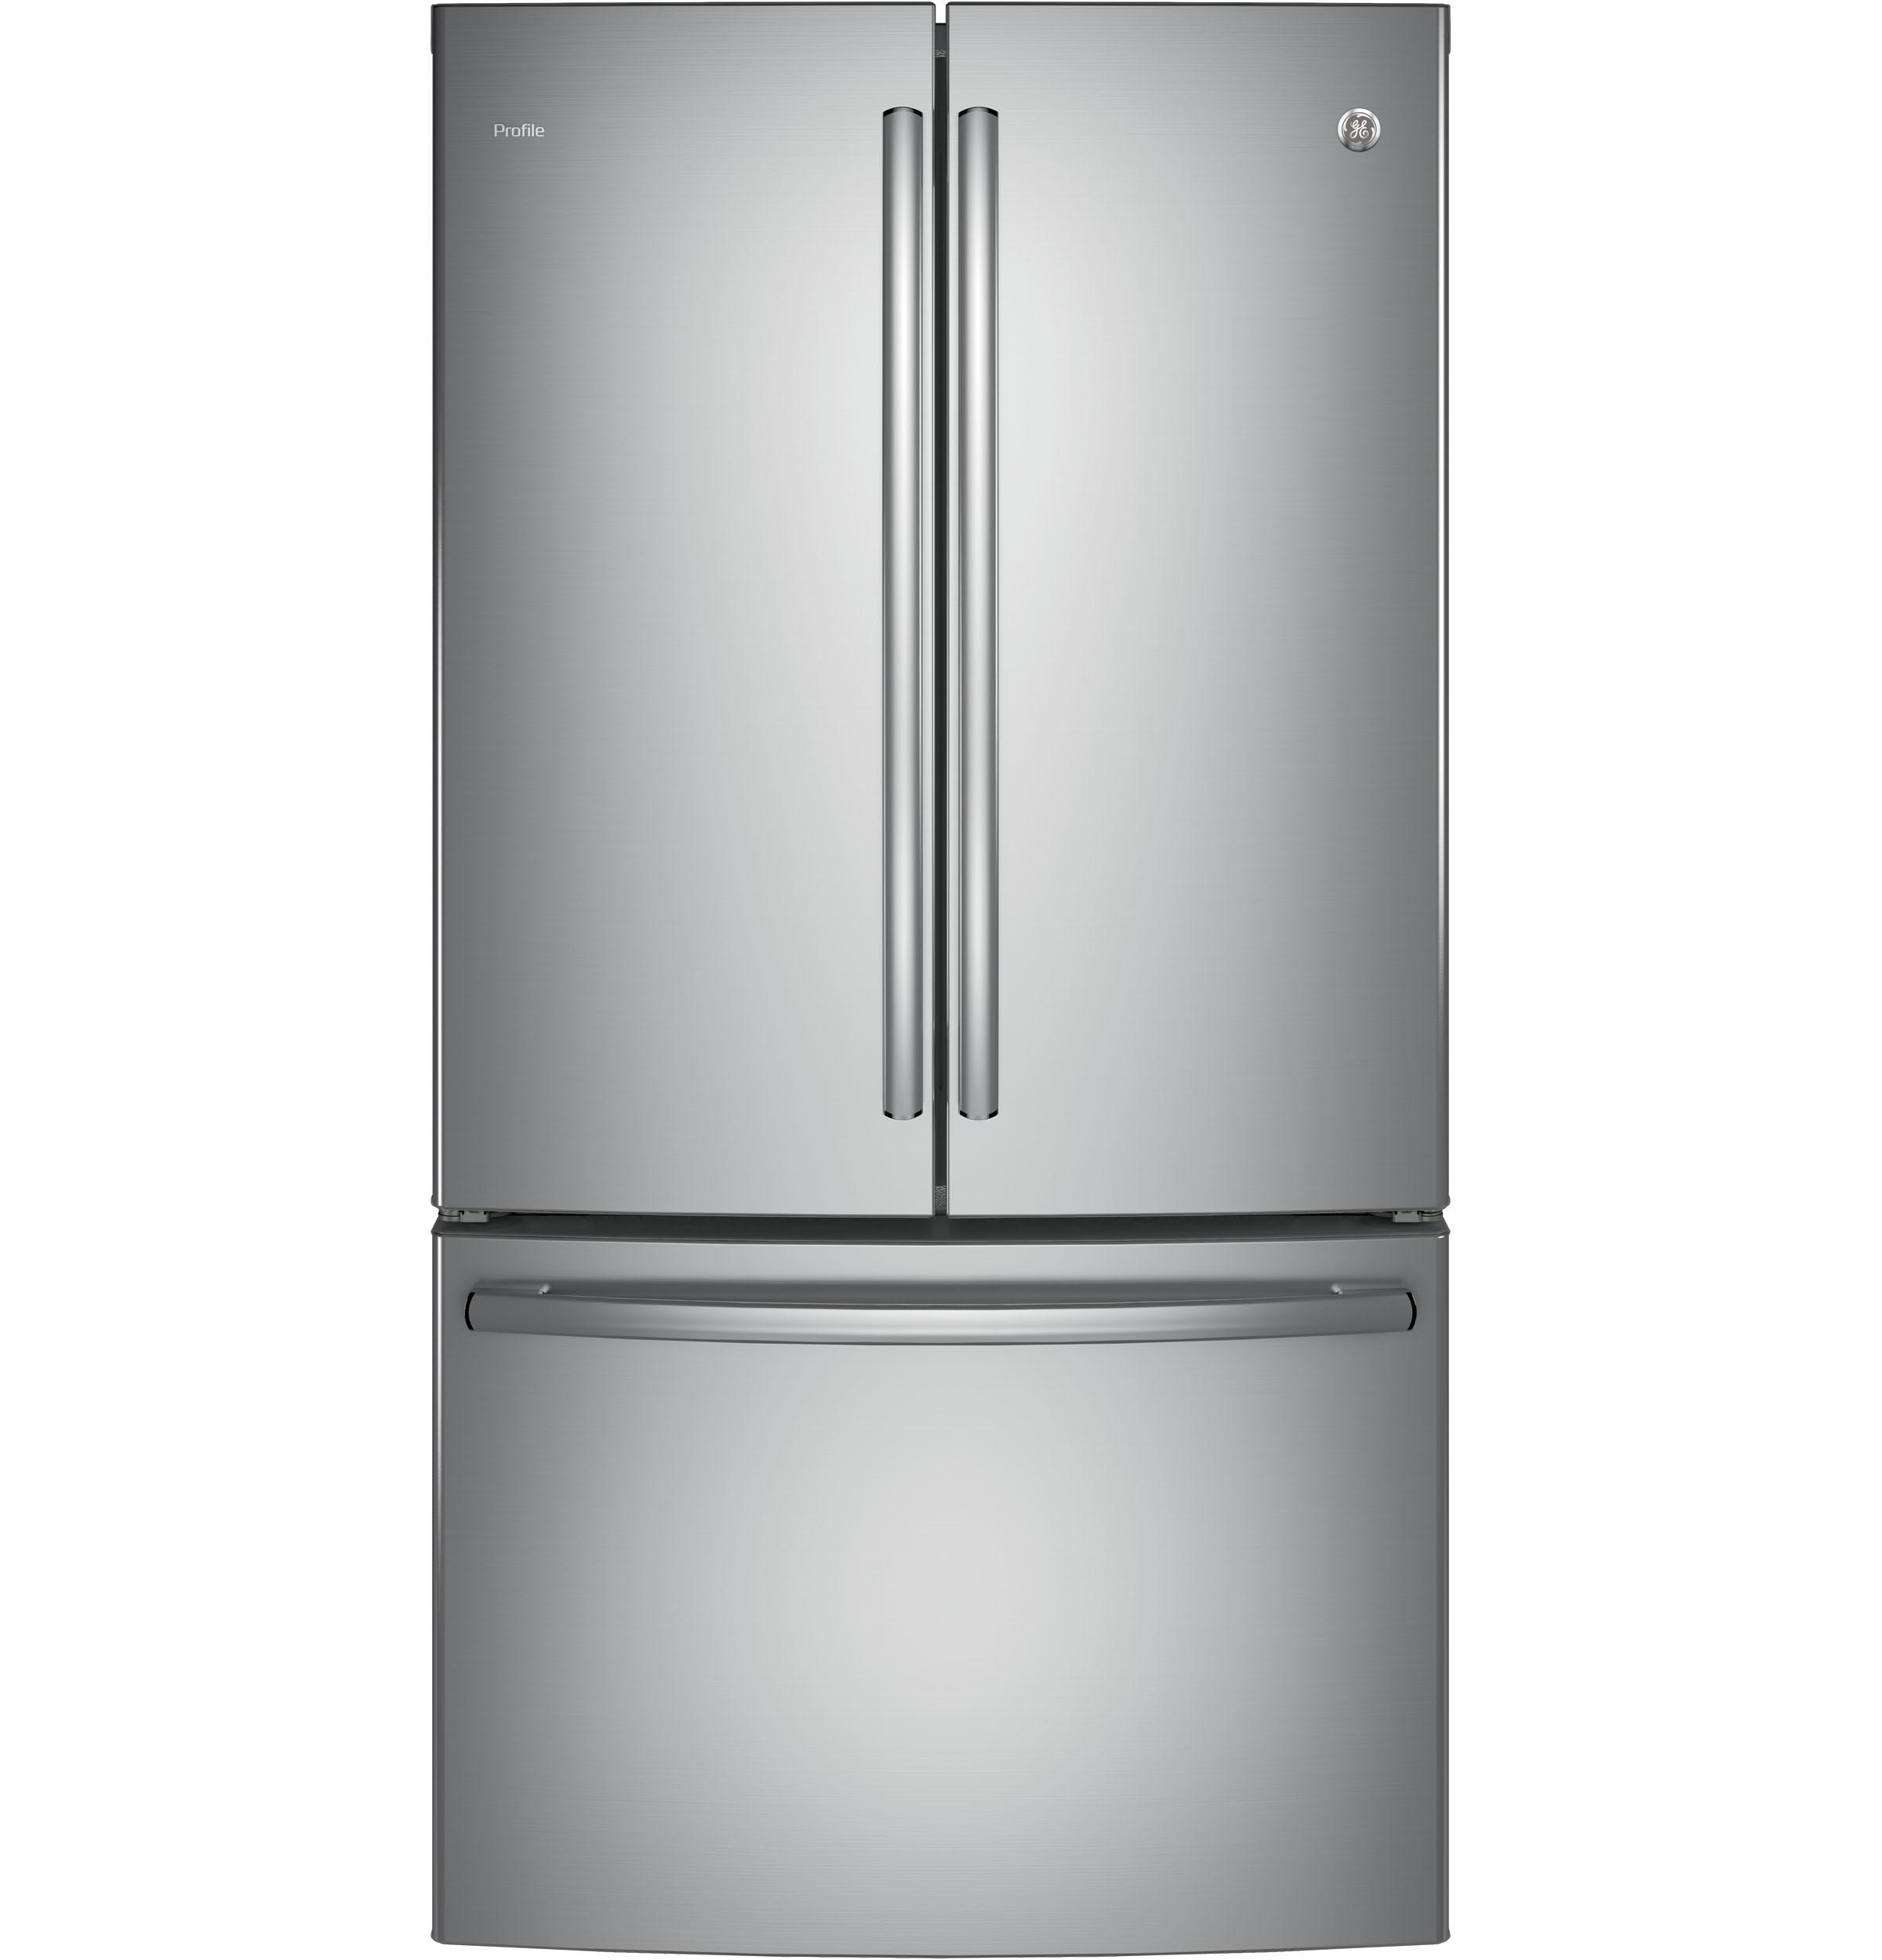 GE Profile(TM) Series ENERGY STAR(R) 23.1 Cu. Ft. Counter-Depth French-Door Refrigerator  Stainless Steel